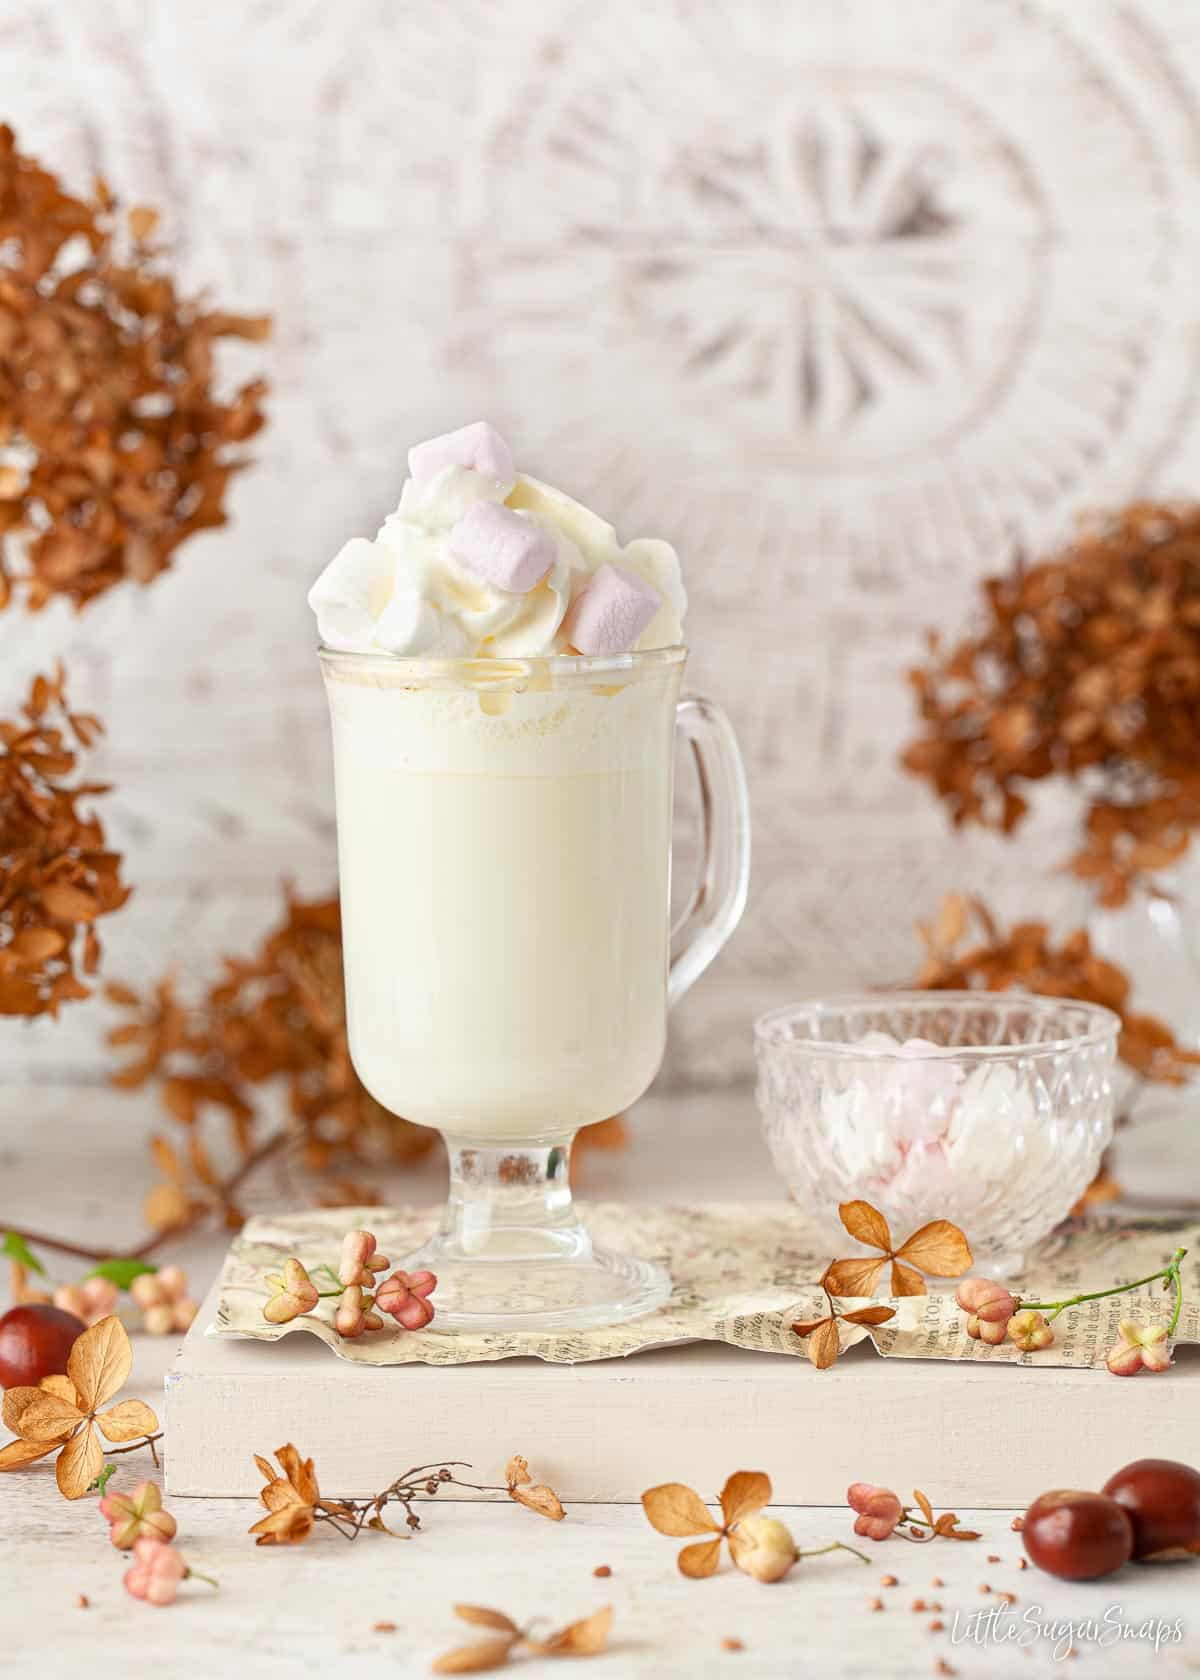 A stemmed glass holding a hot milky drink topped with cream and marshmallows